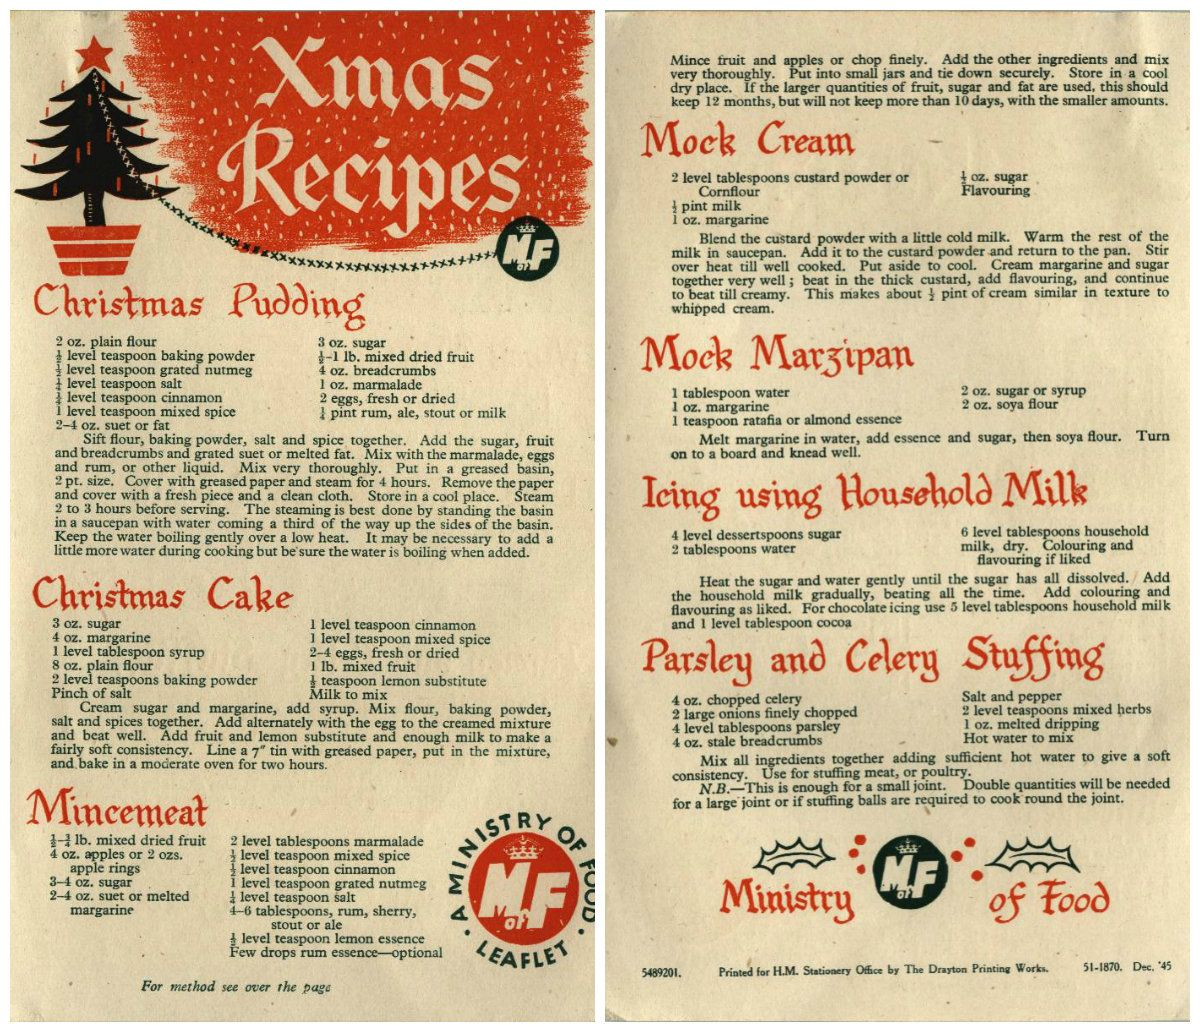 Ministry of Food recipes from 1945 Vintage Christmas